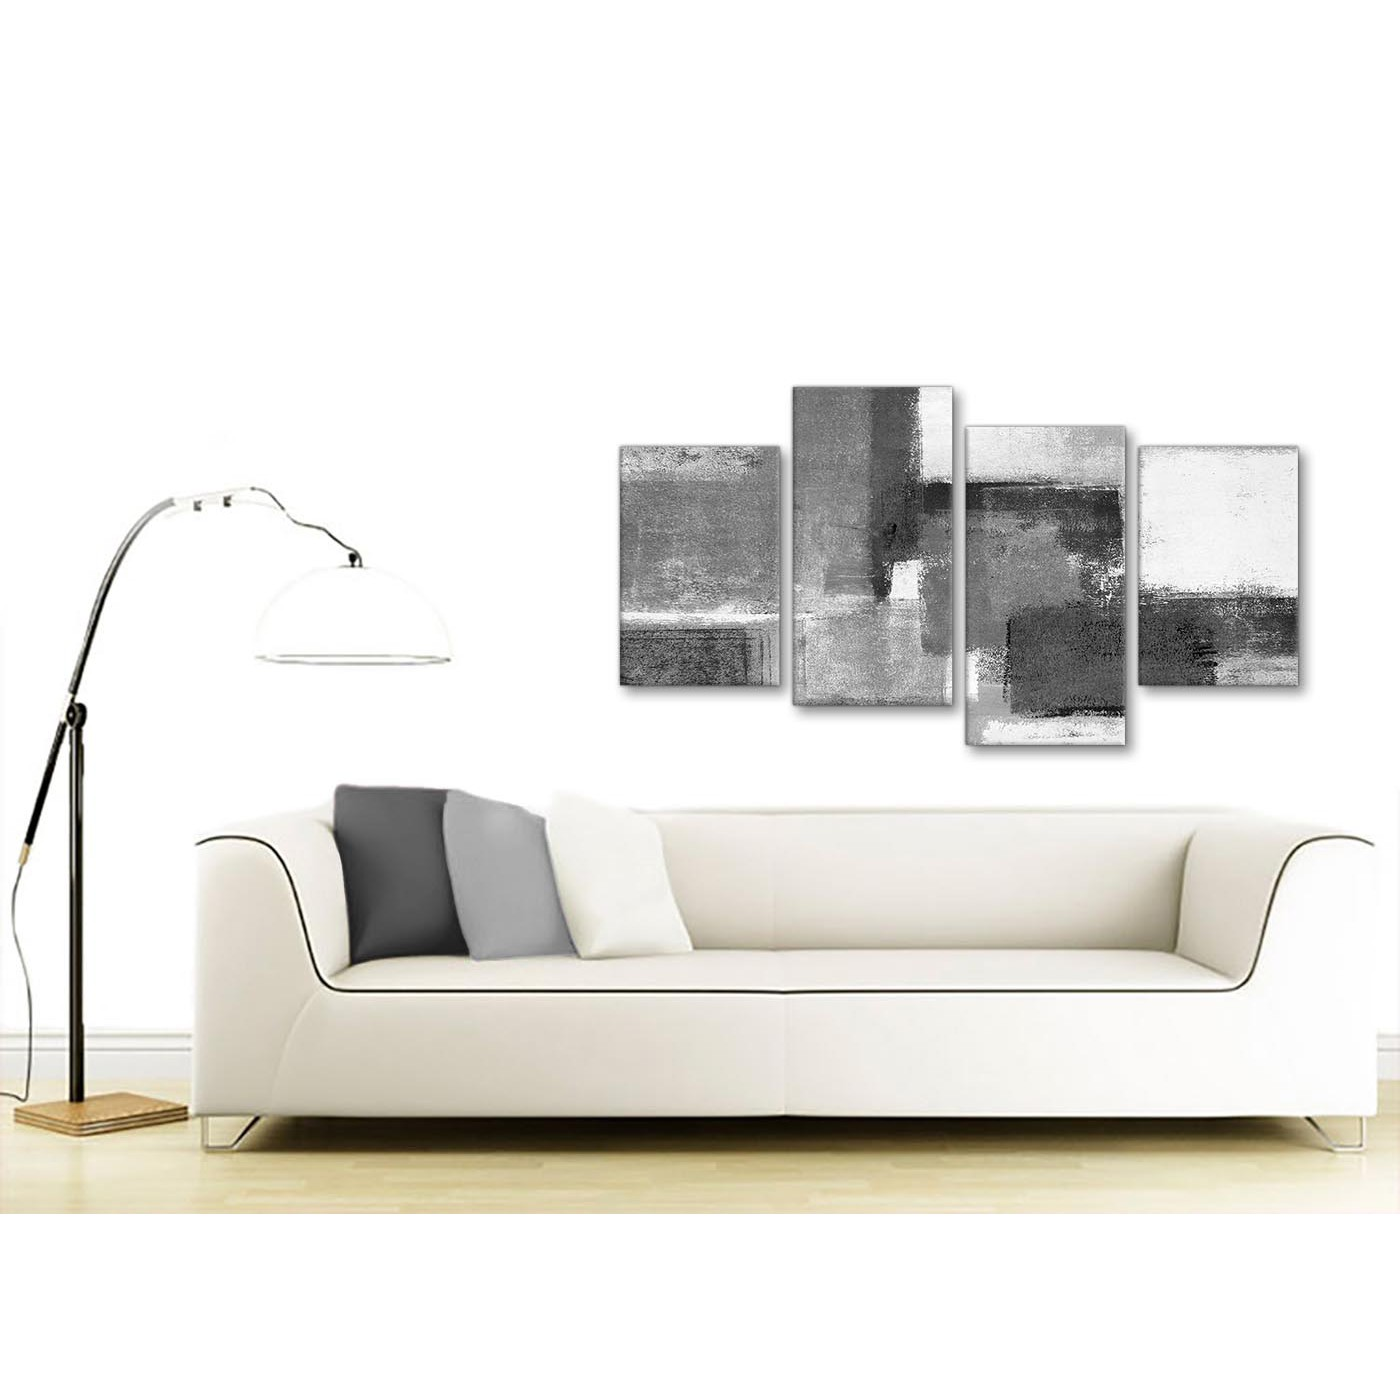 Bedroom Canvas Wall Art Uk: Large Black White Grey Abstract Living Room Canvas